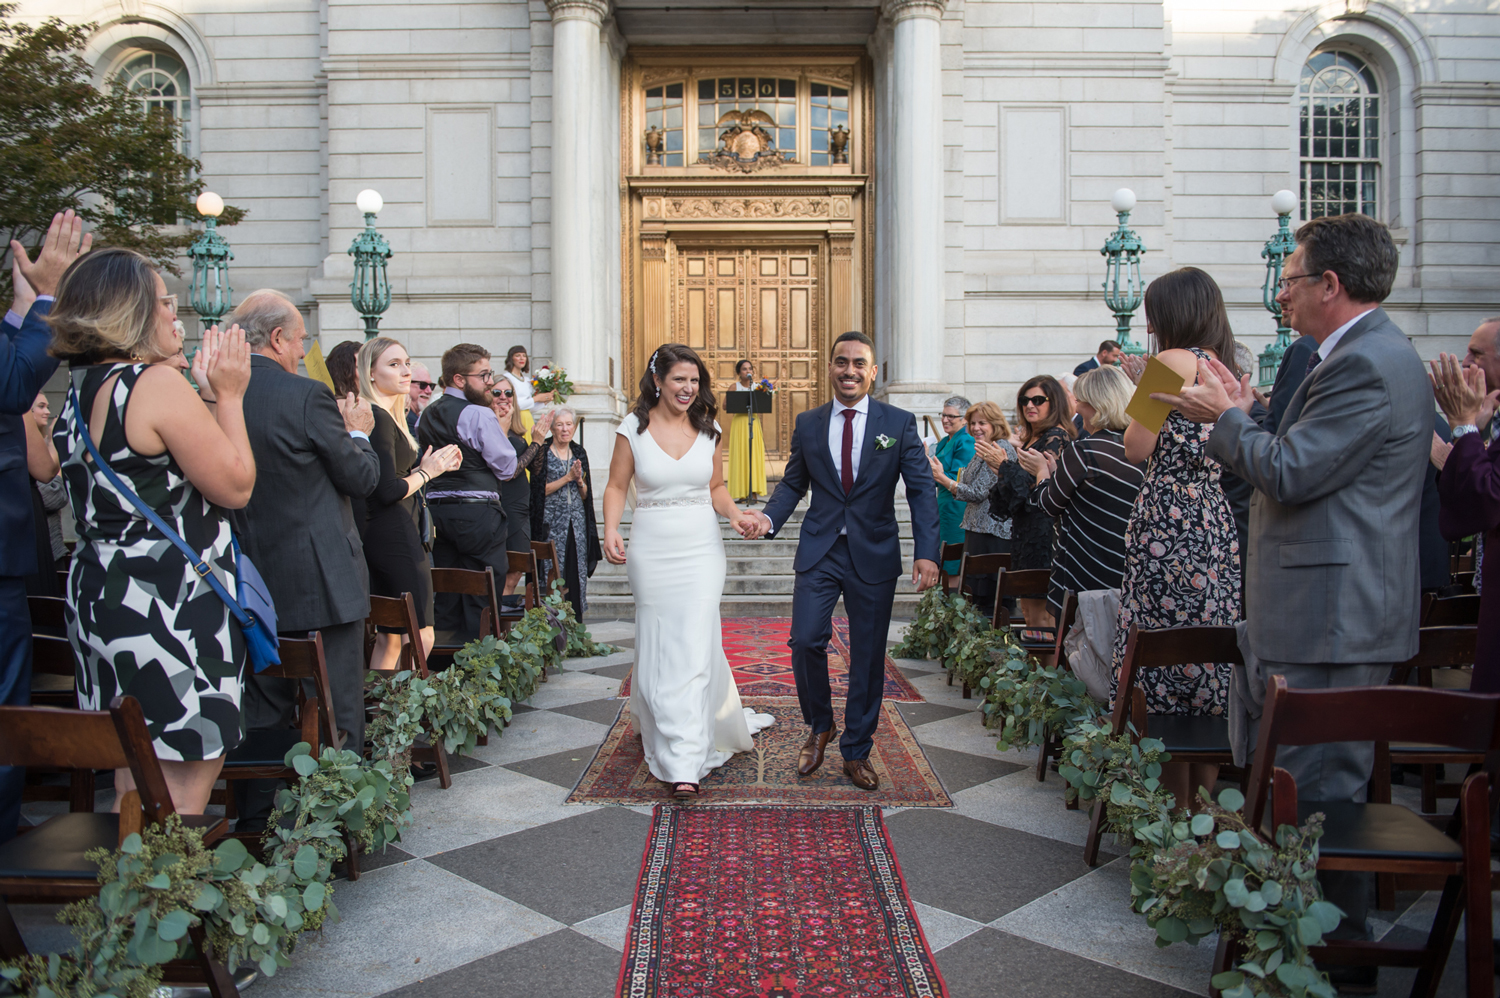 city hall wedding recessional bride and groom walking down path of rugs